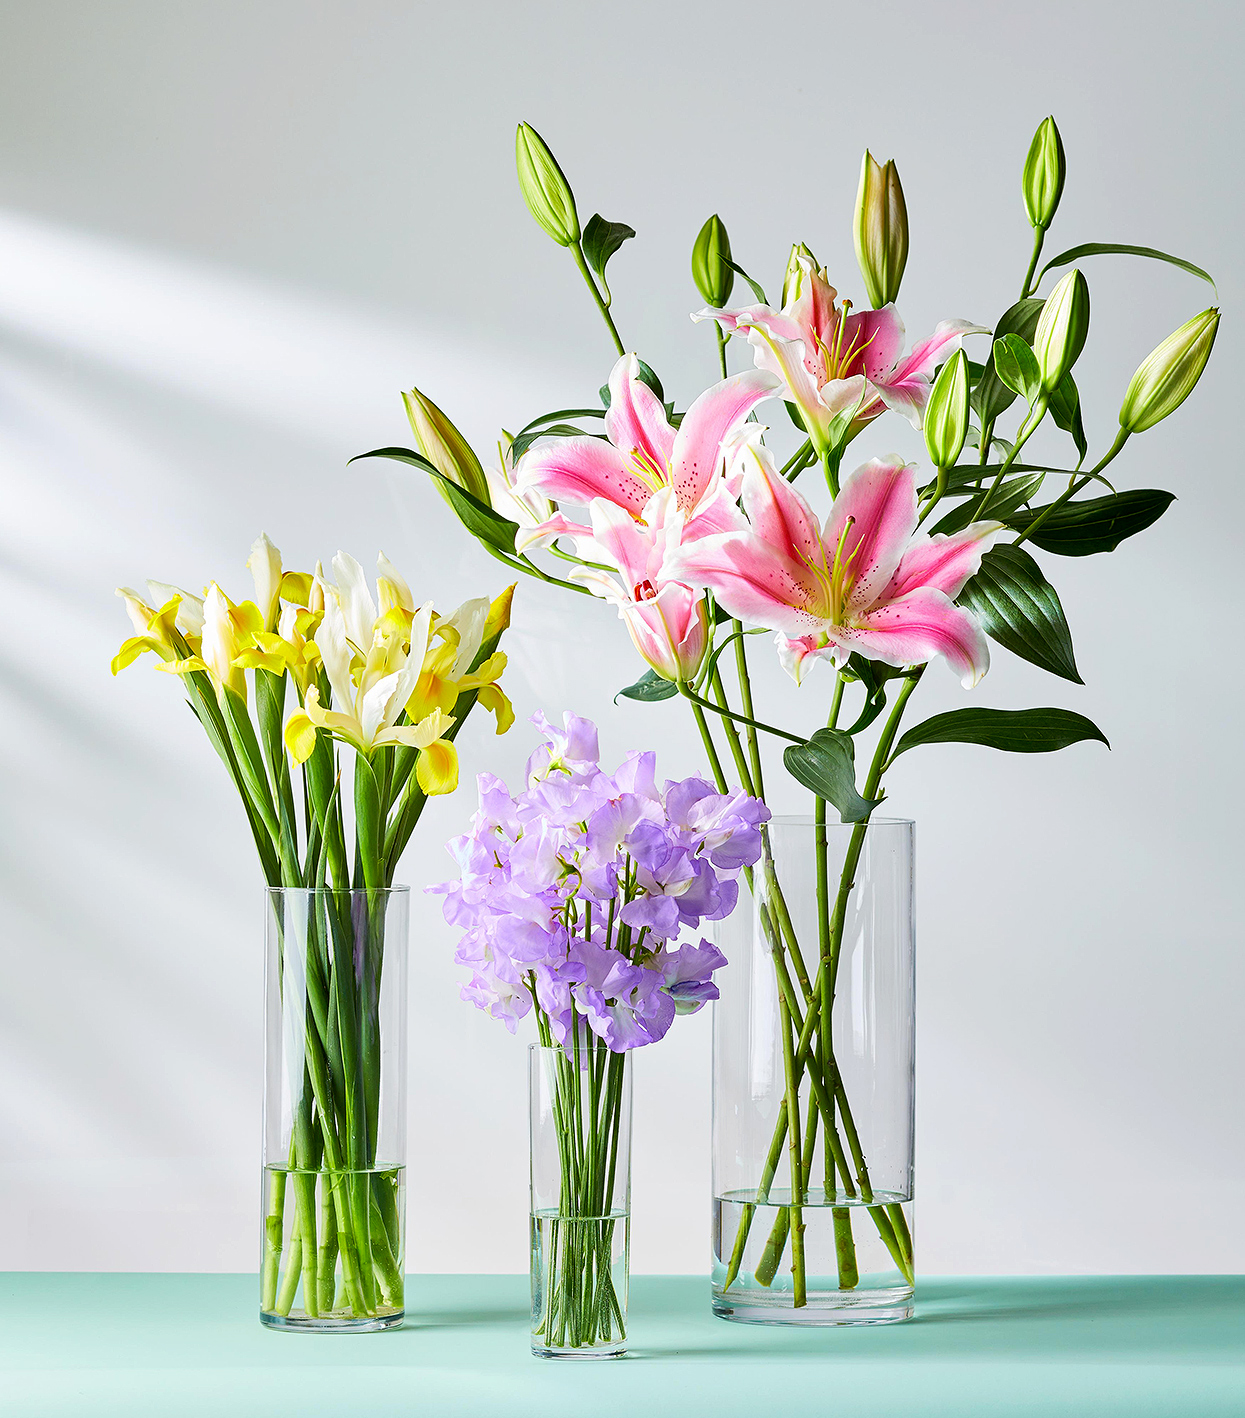 cylinder vases with long-stemmed flowers